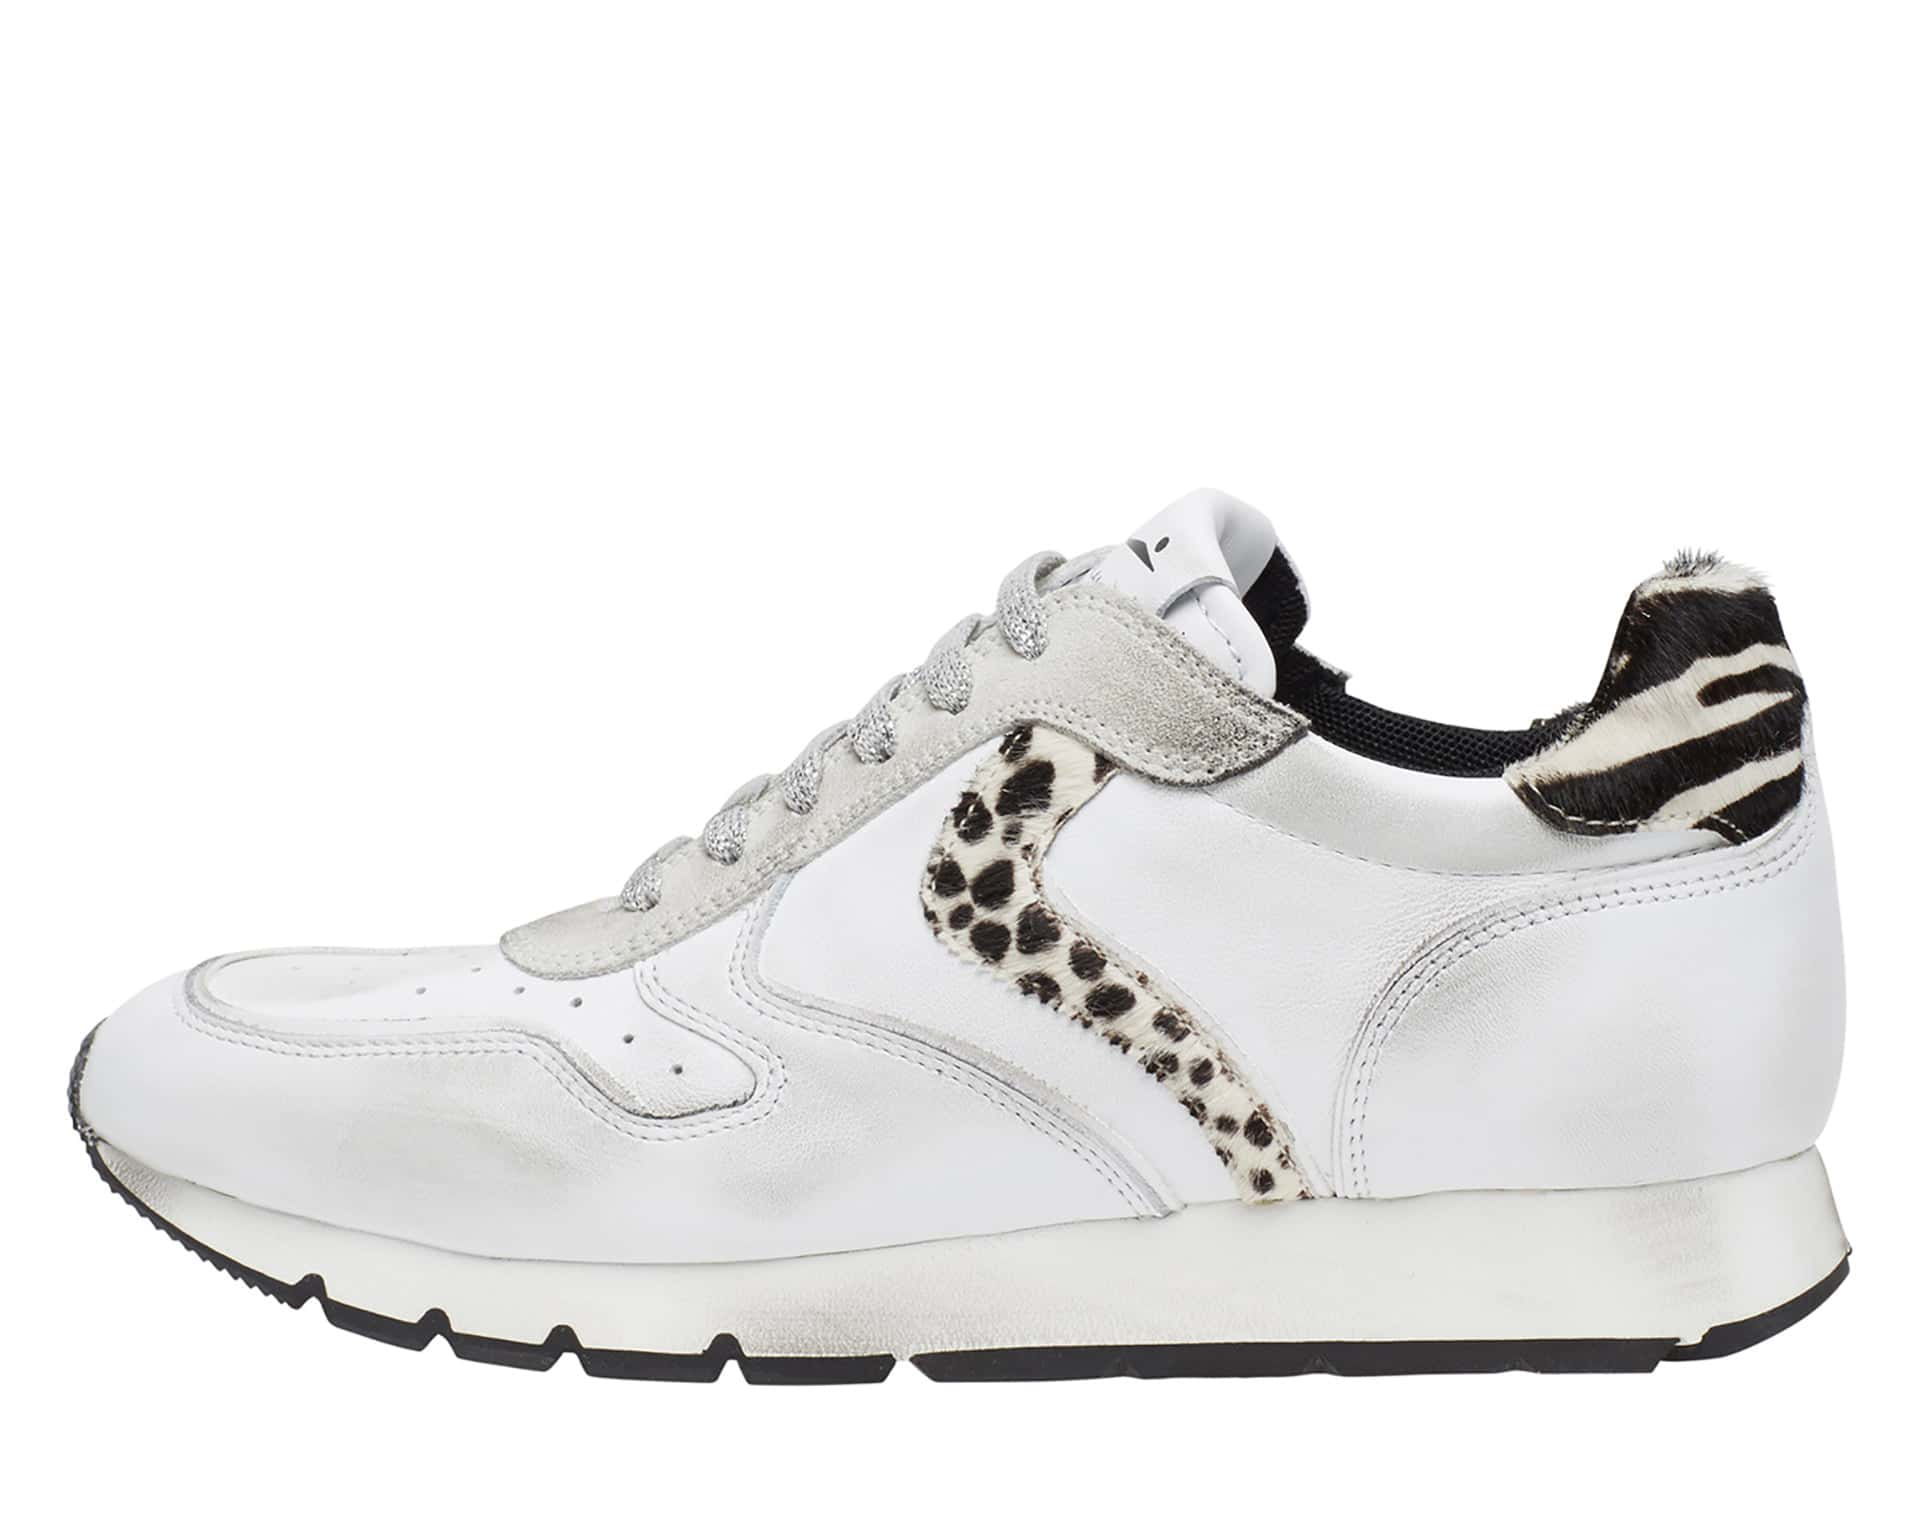 JULIA HOLES - Sneakers in pelle e cavallino - Bianco/Nero